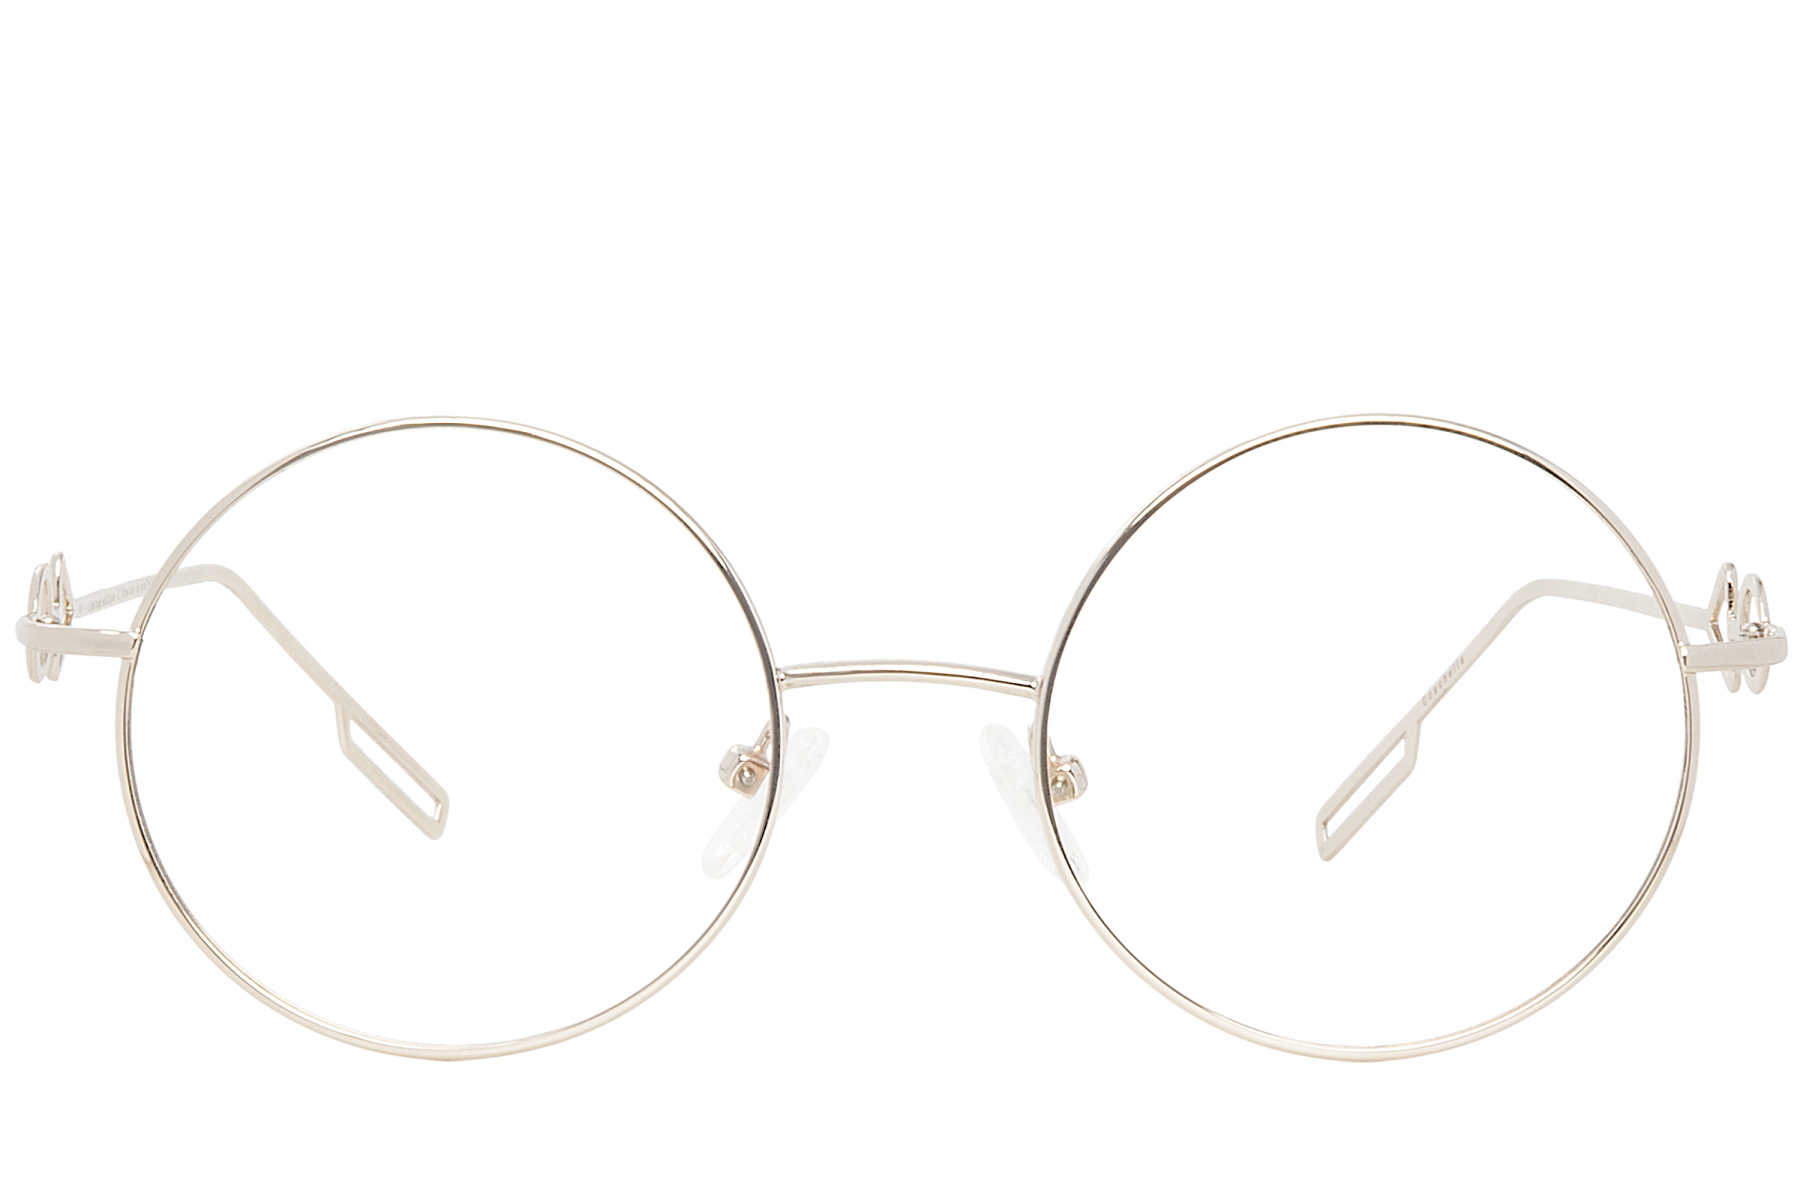 Circle glasses png. Images free download